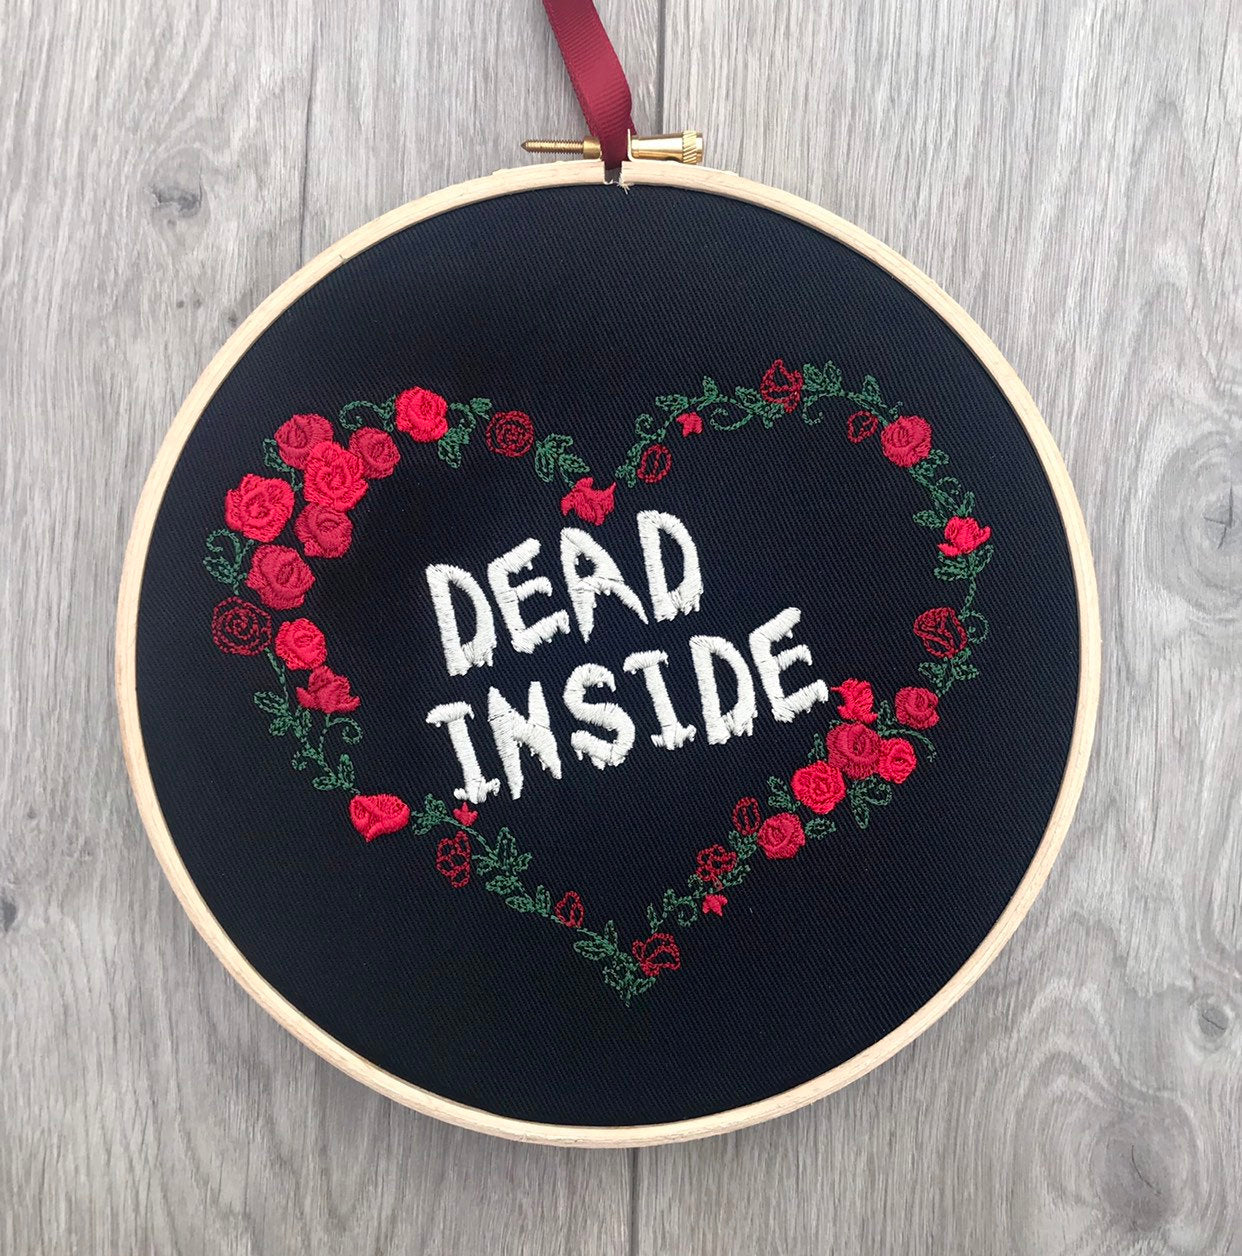 Dead inside, heart of roses embroidery hoop art